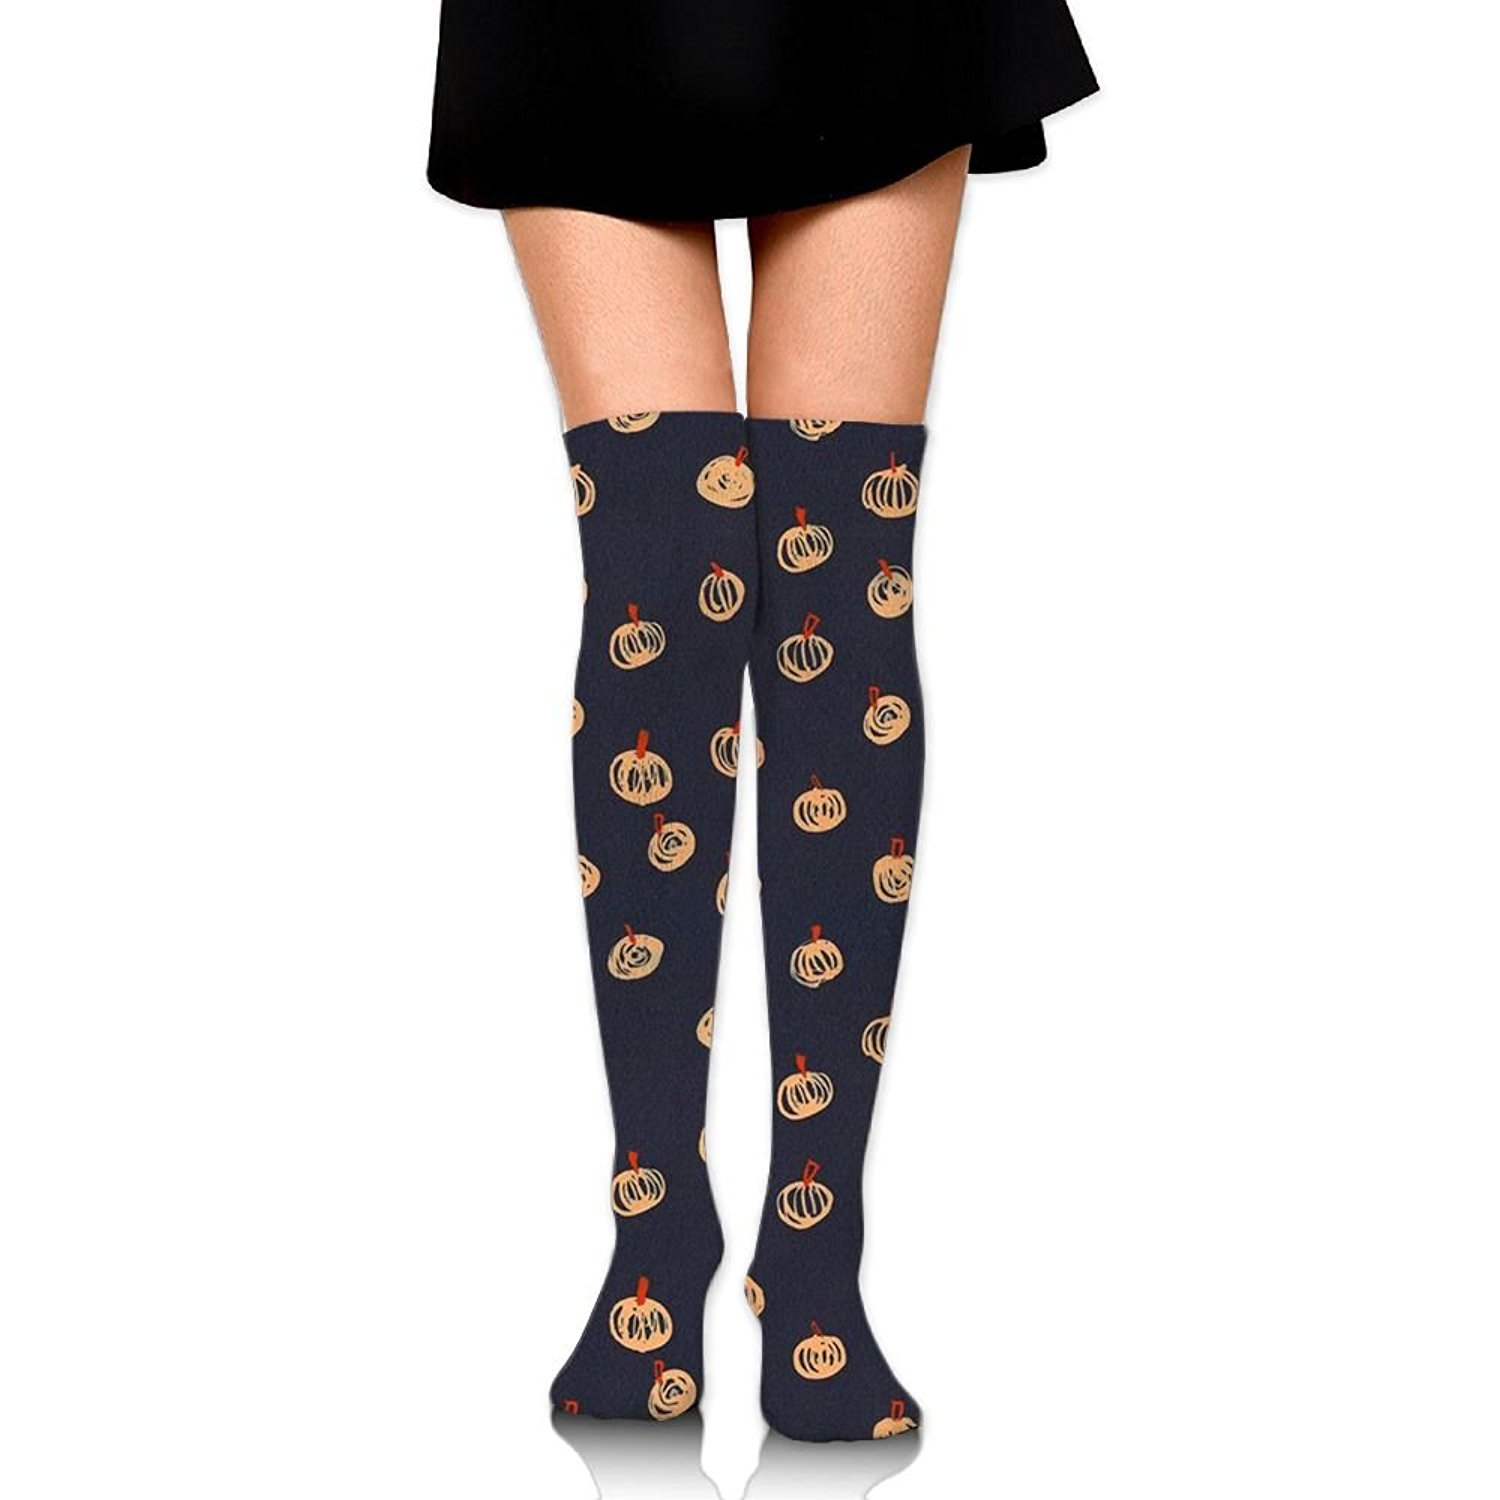 Zaqxsw Painting Pumpkin Women Fashion Thigh High Socks Long Socks For Girls